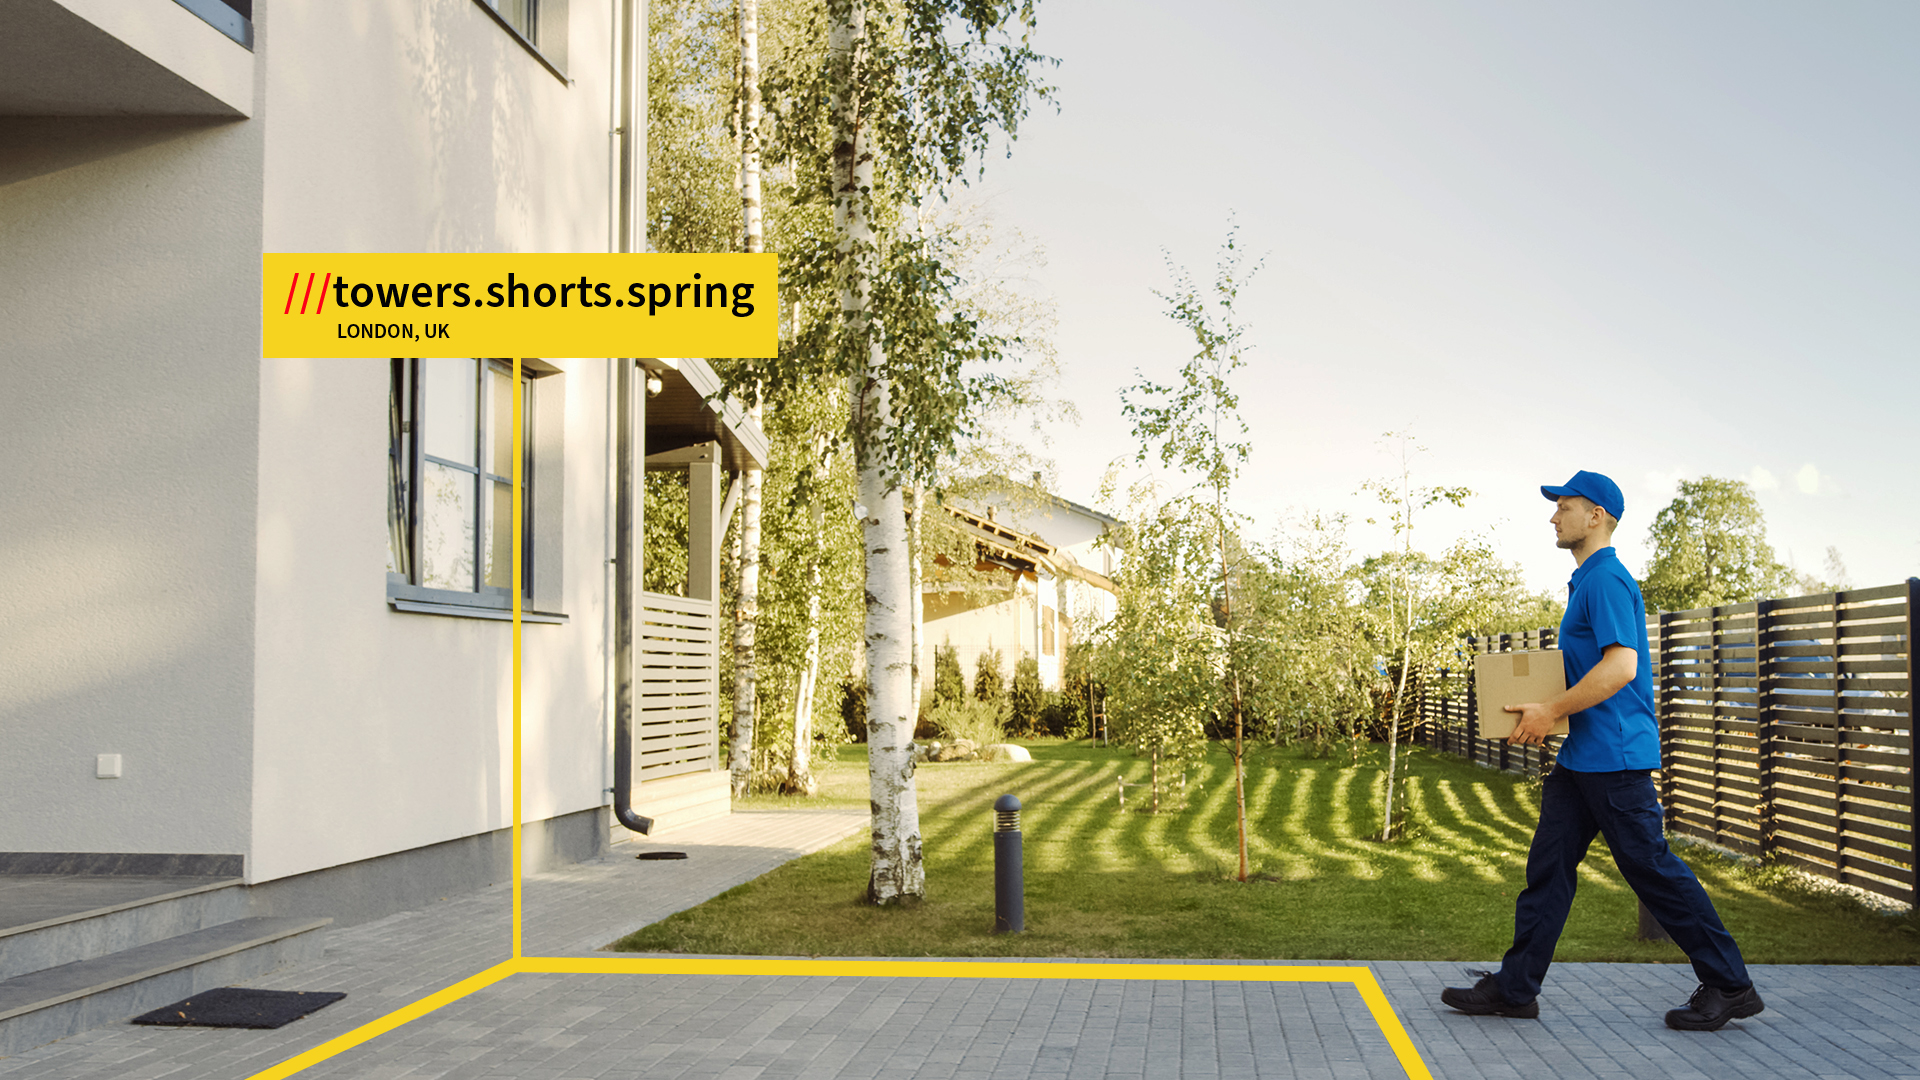 Delivery driver arriving at what 3 words address towers shorts spring